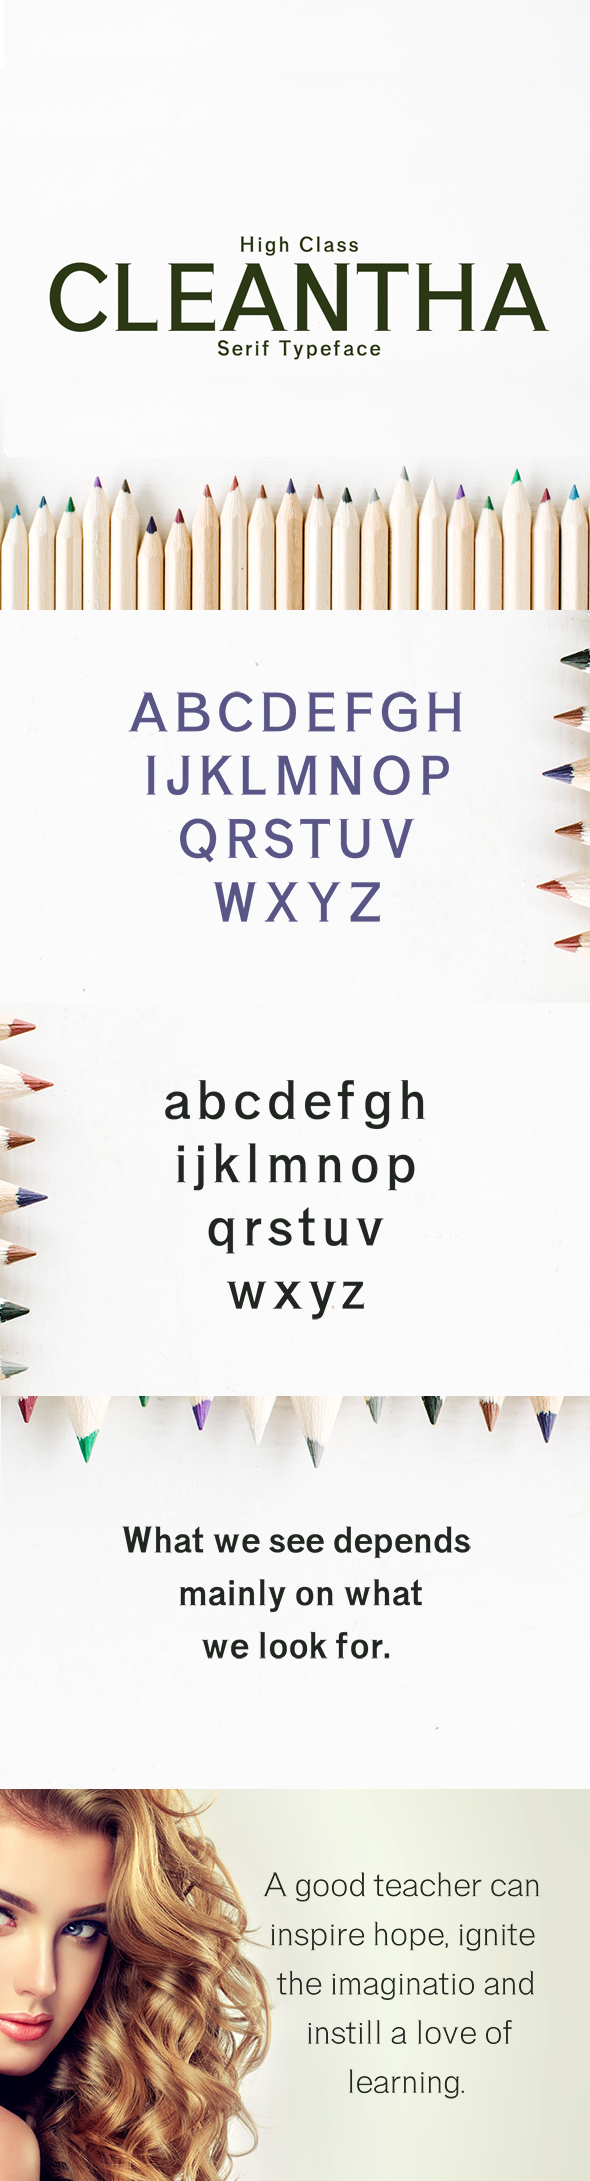 Cleantha Serif Typeface - Serif Fonts